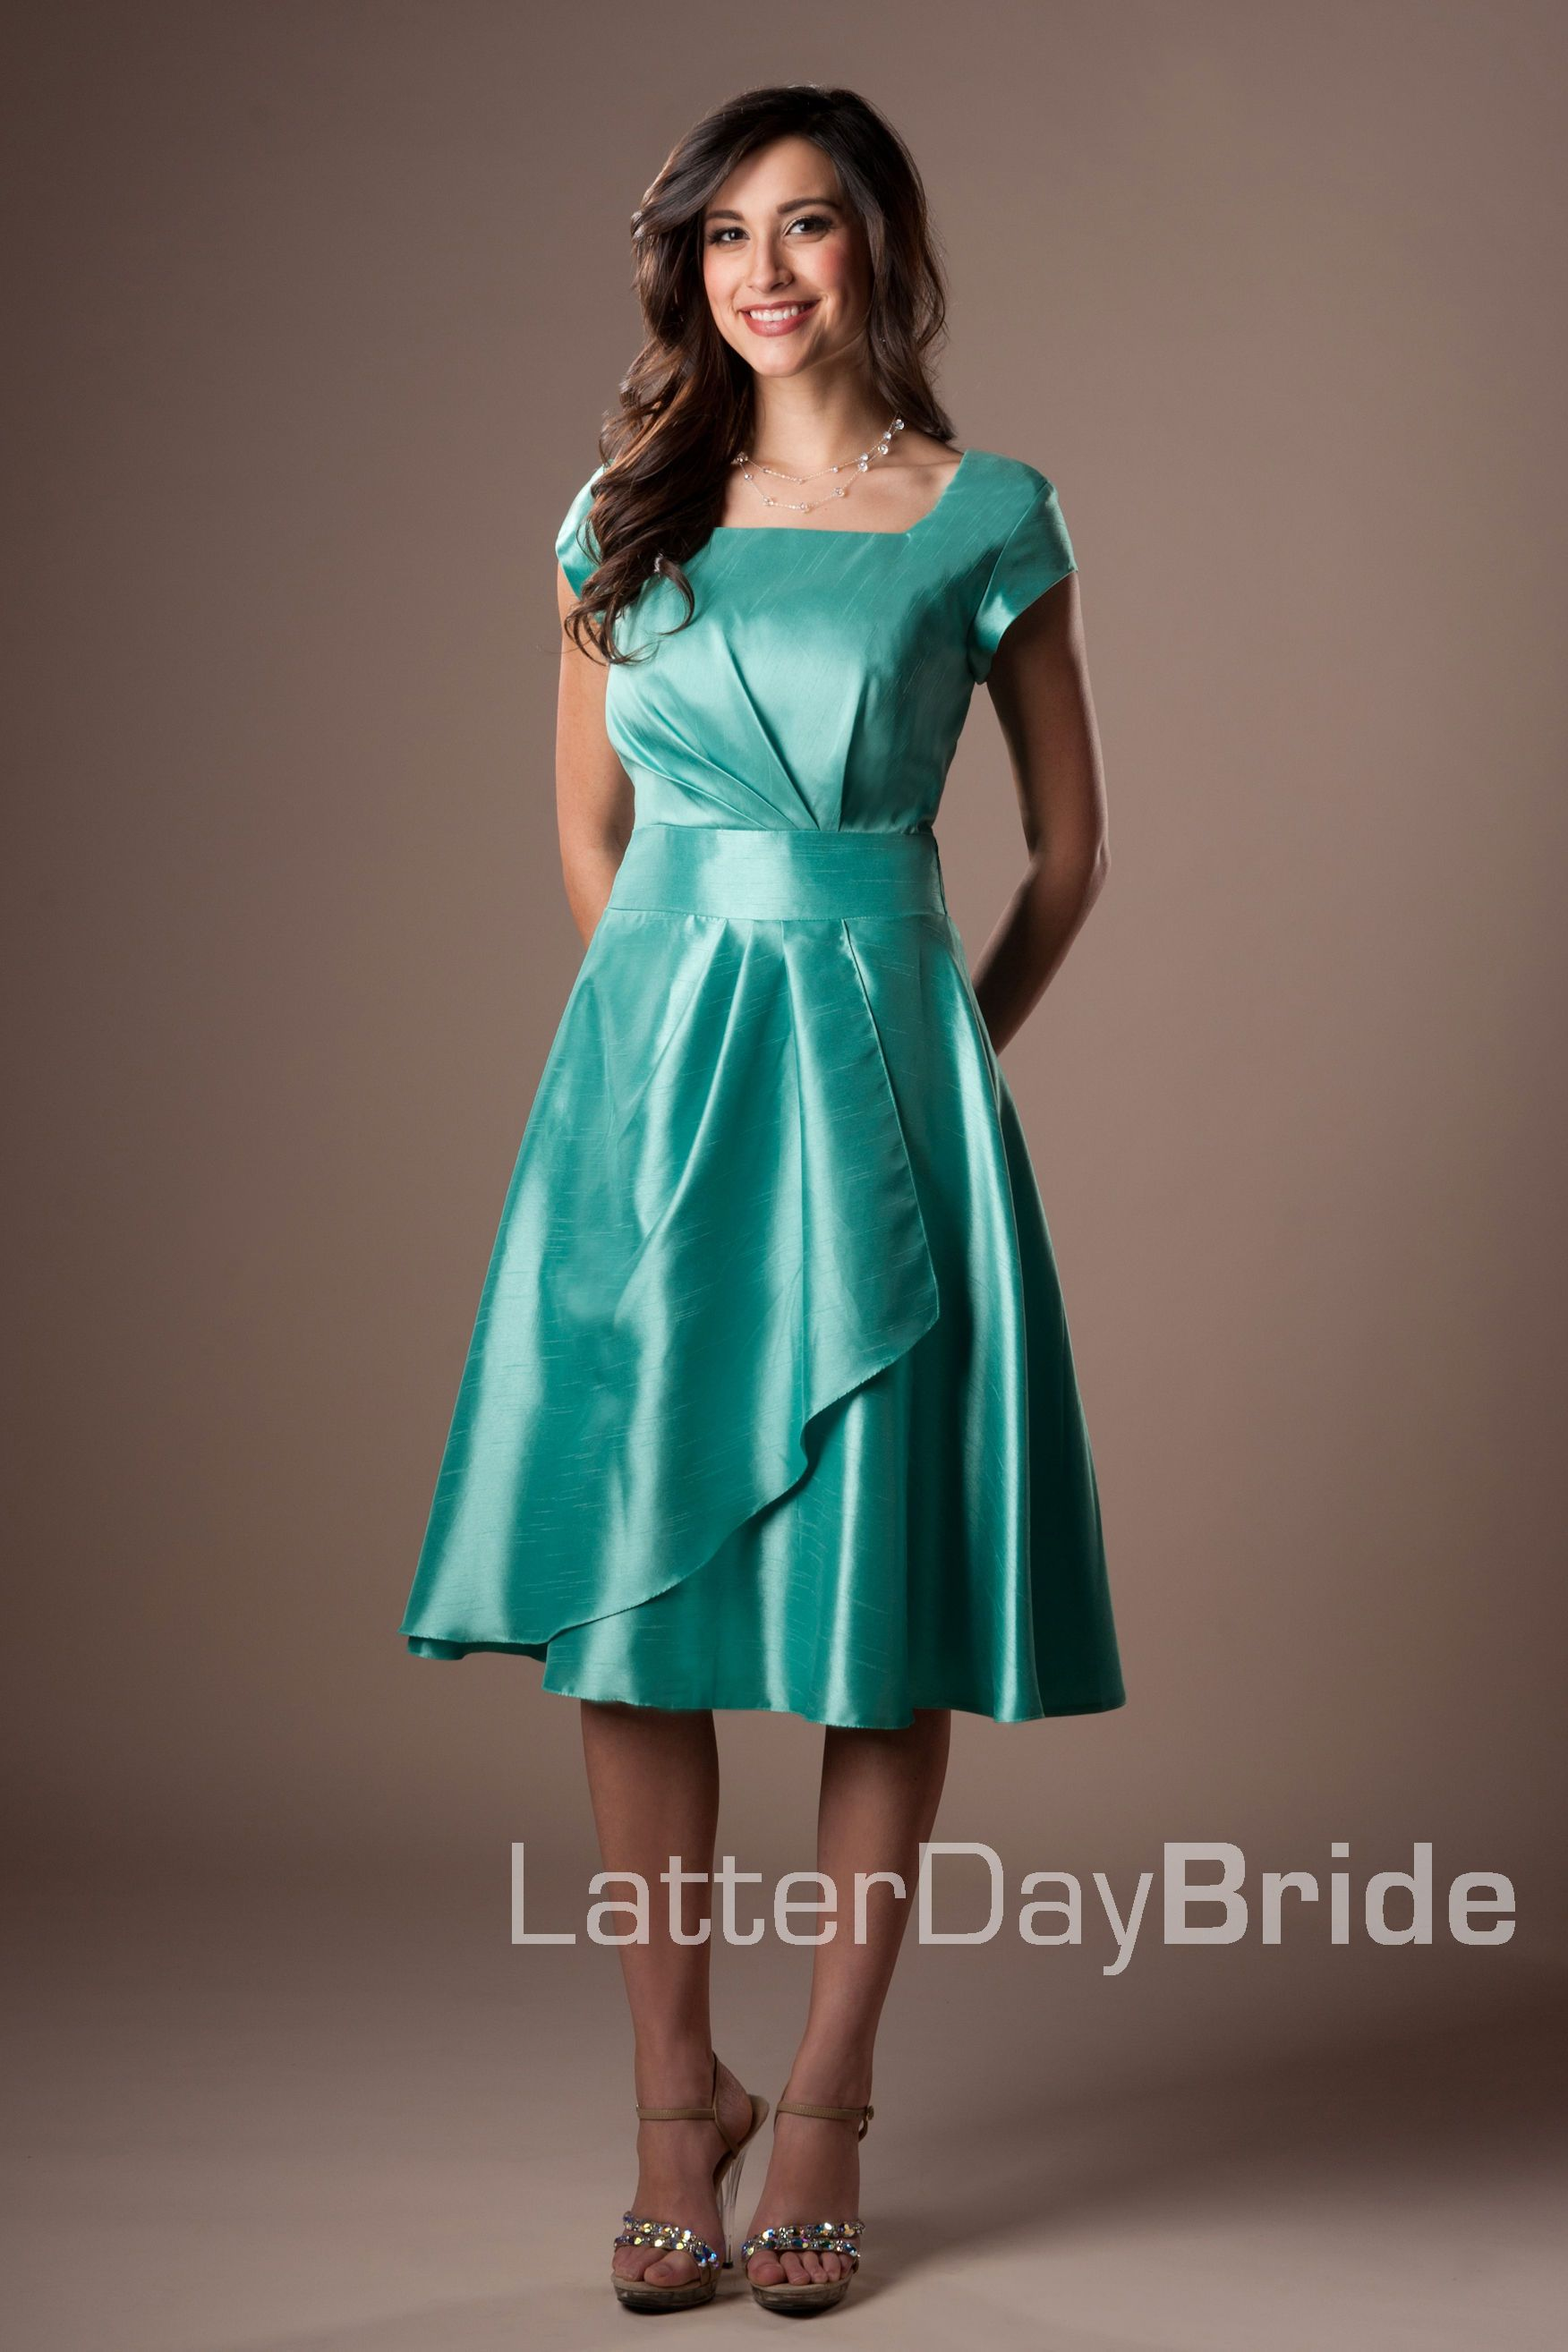 Bridesmaid & Prom, Mary | LatterDayBride & Prom Modest Mormon LDS ...